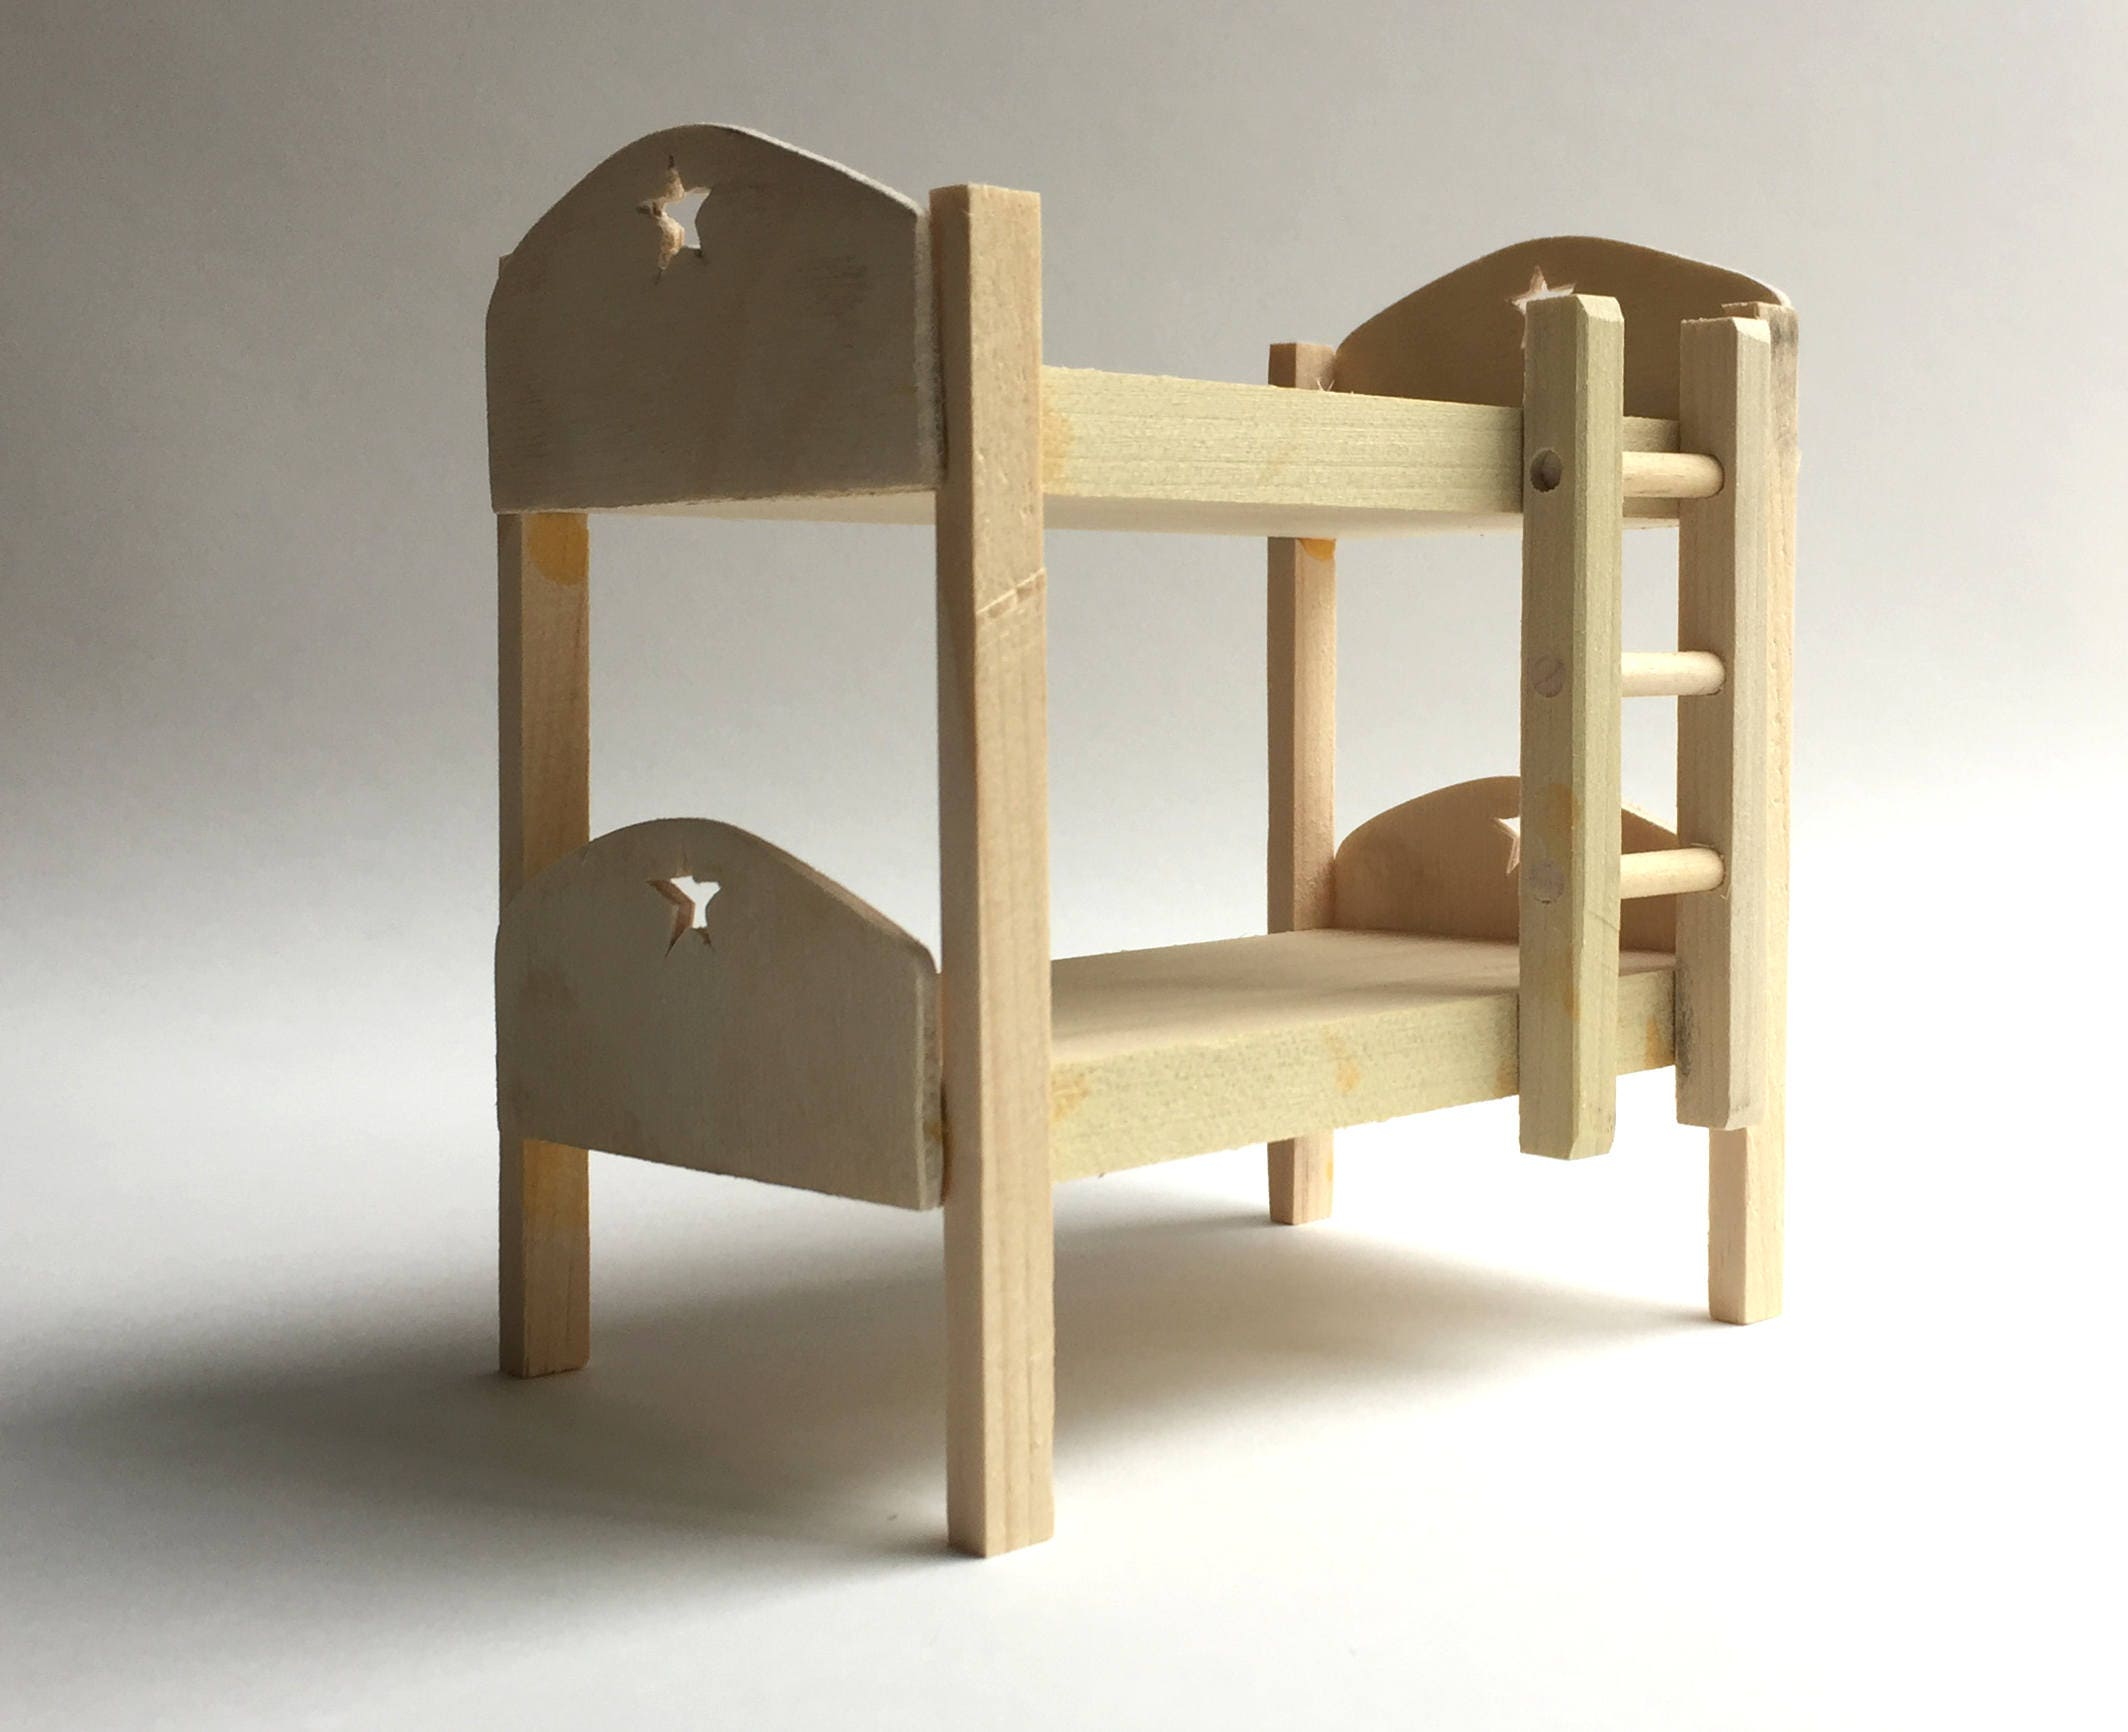 Doll House Bunk Bed, Dollhouse Furniture, Miniature Furniture, Handmade Dollhouse  Furniture, Wooden